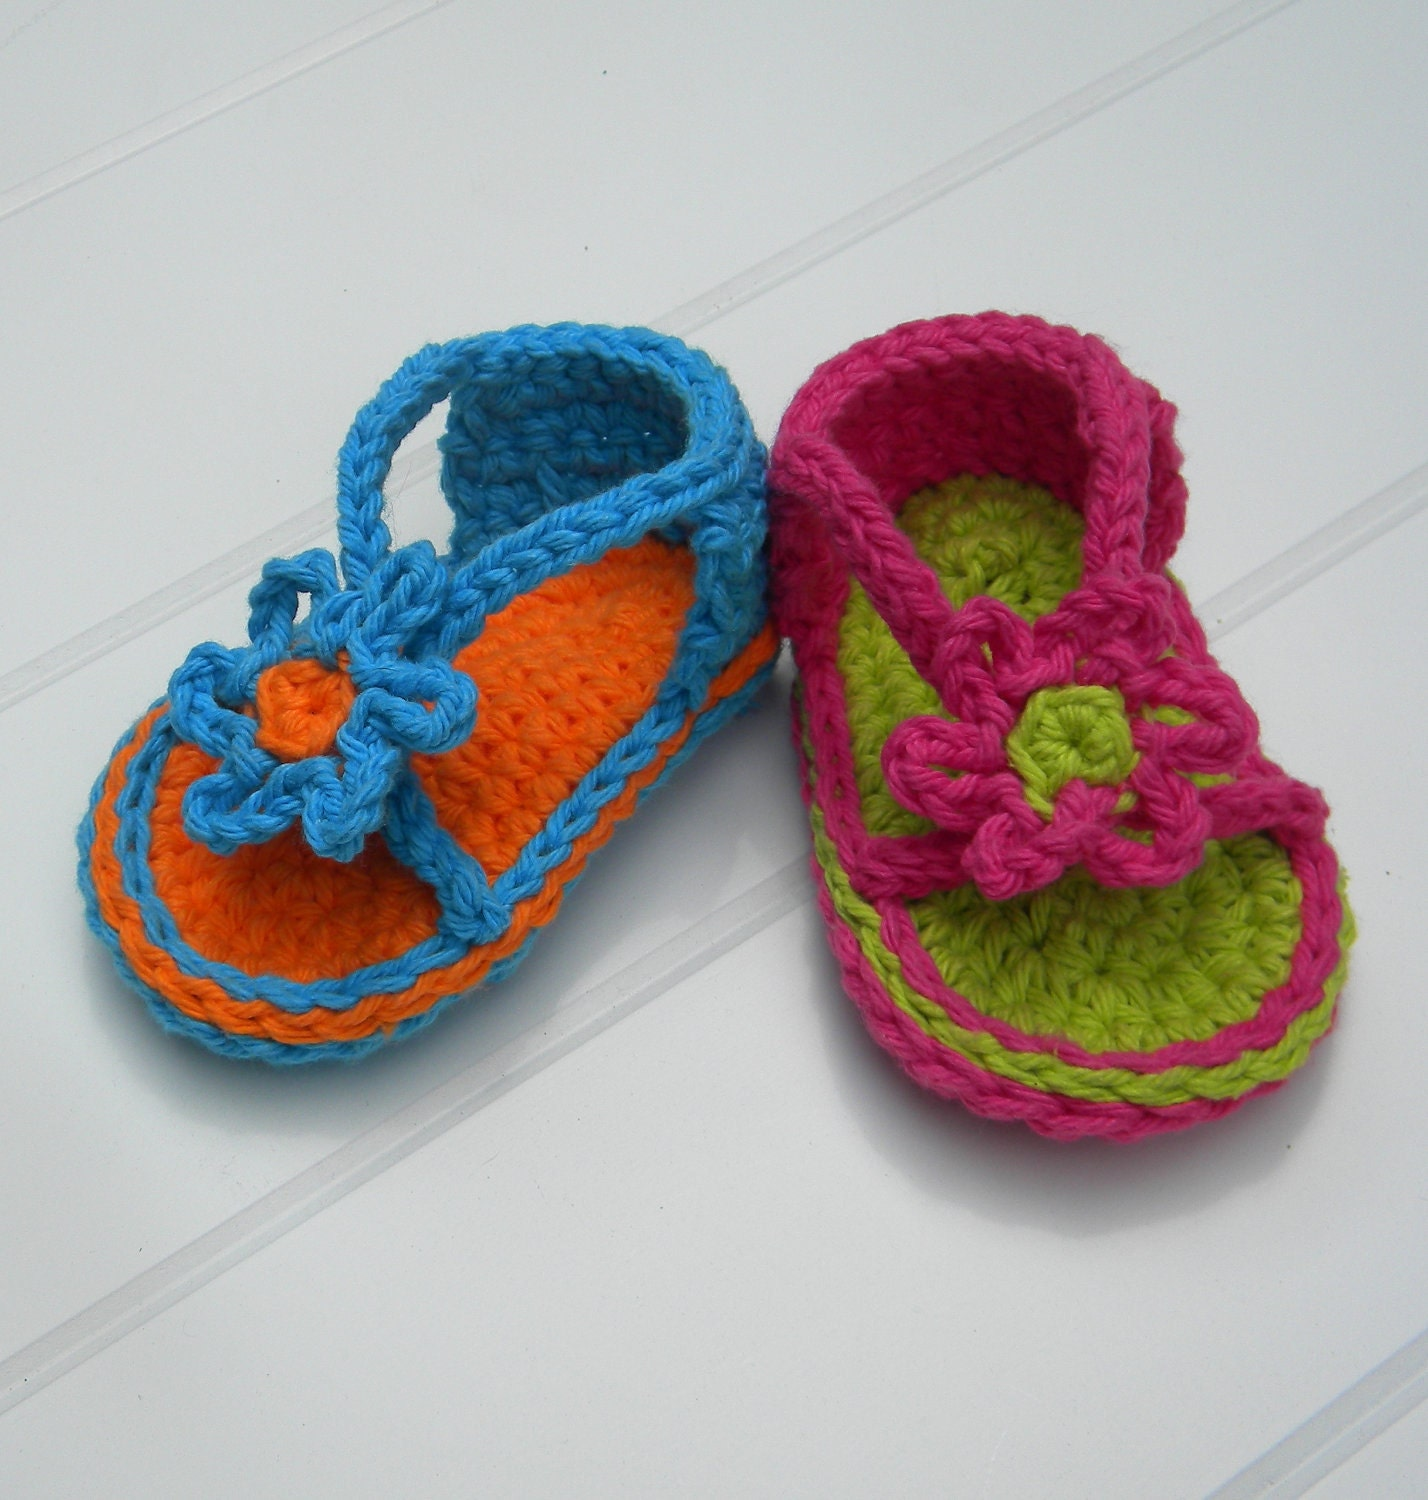 Crochet Baby Toe Sandals Free Pattern : Baby Strapey Sandal Crochet Pattern.Immediate PDF file